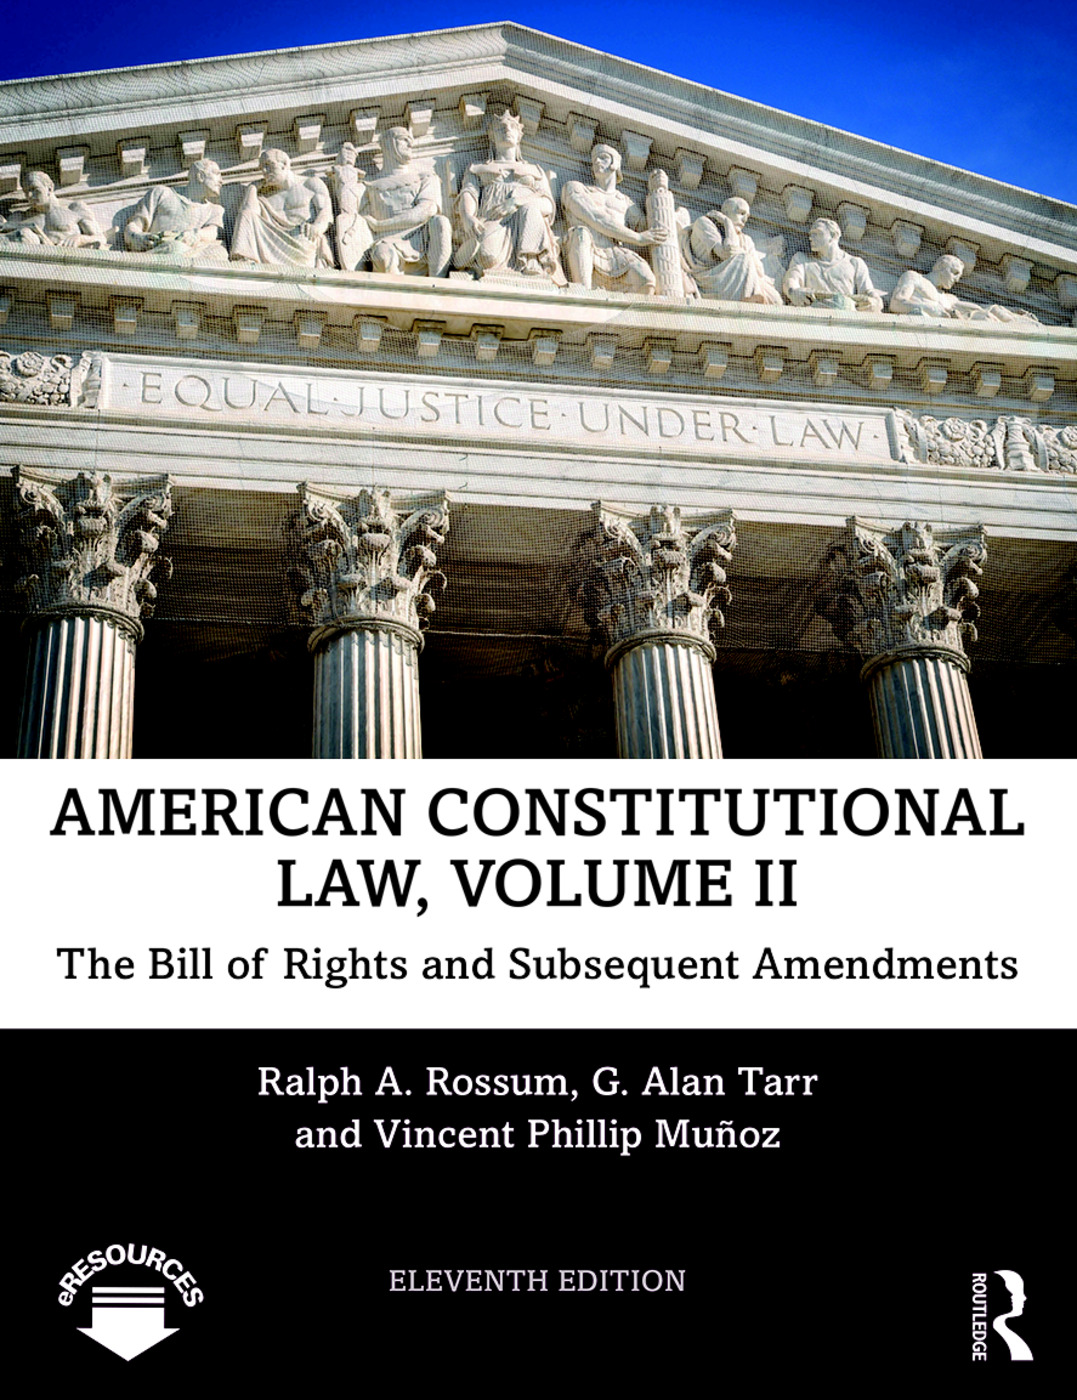 American Constitutional Law, Volume II: The Bill of Rights and Subsequent Amendments book cover